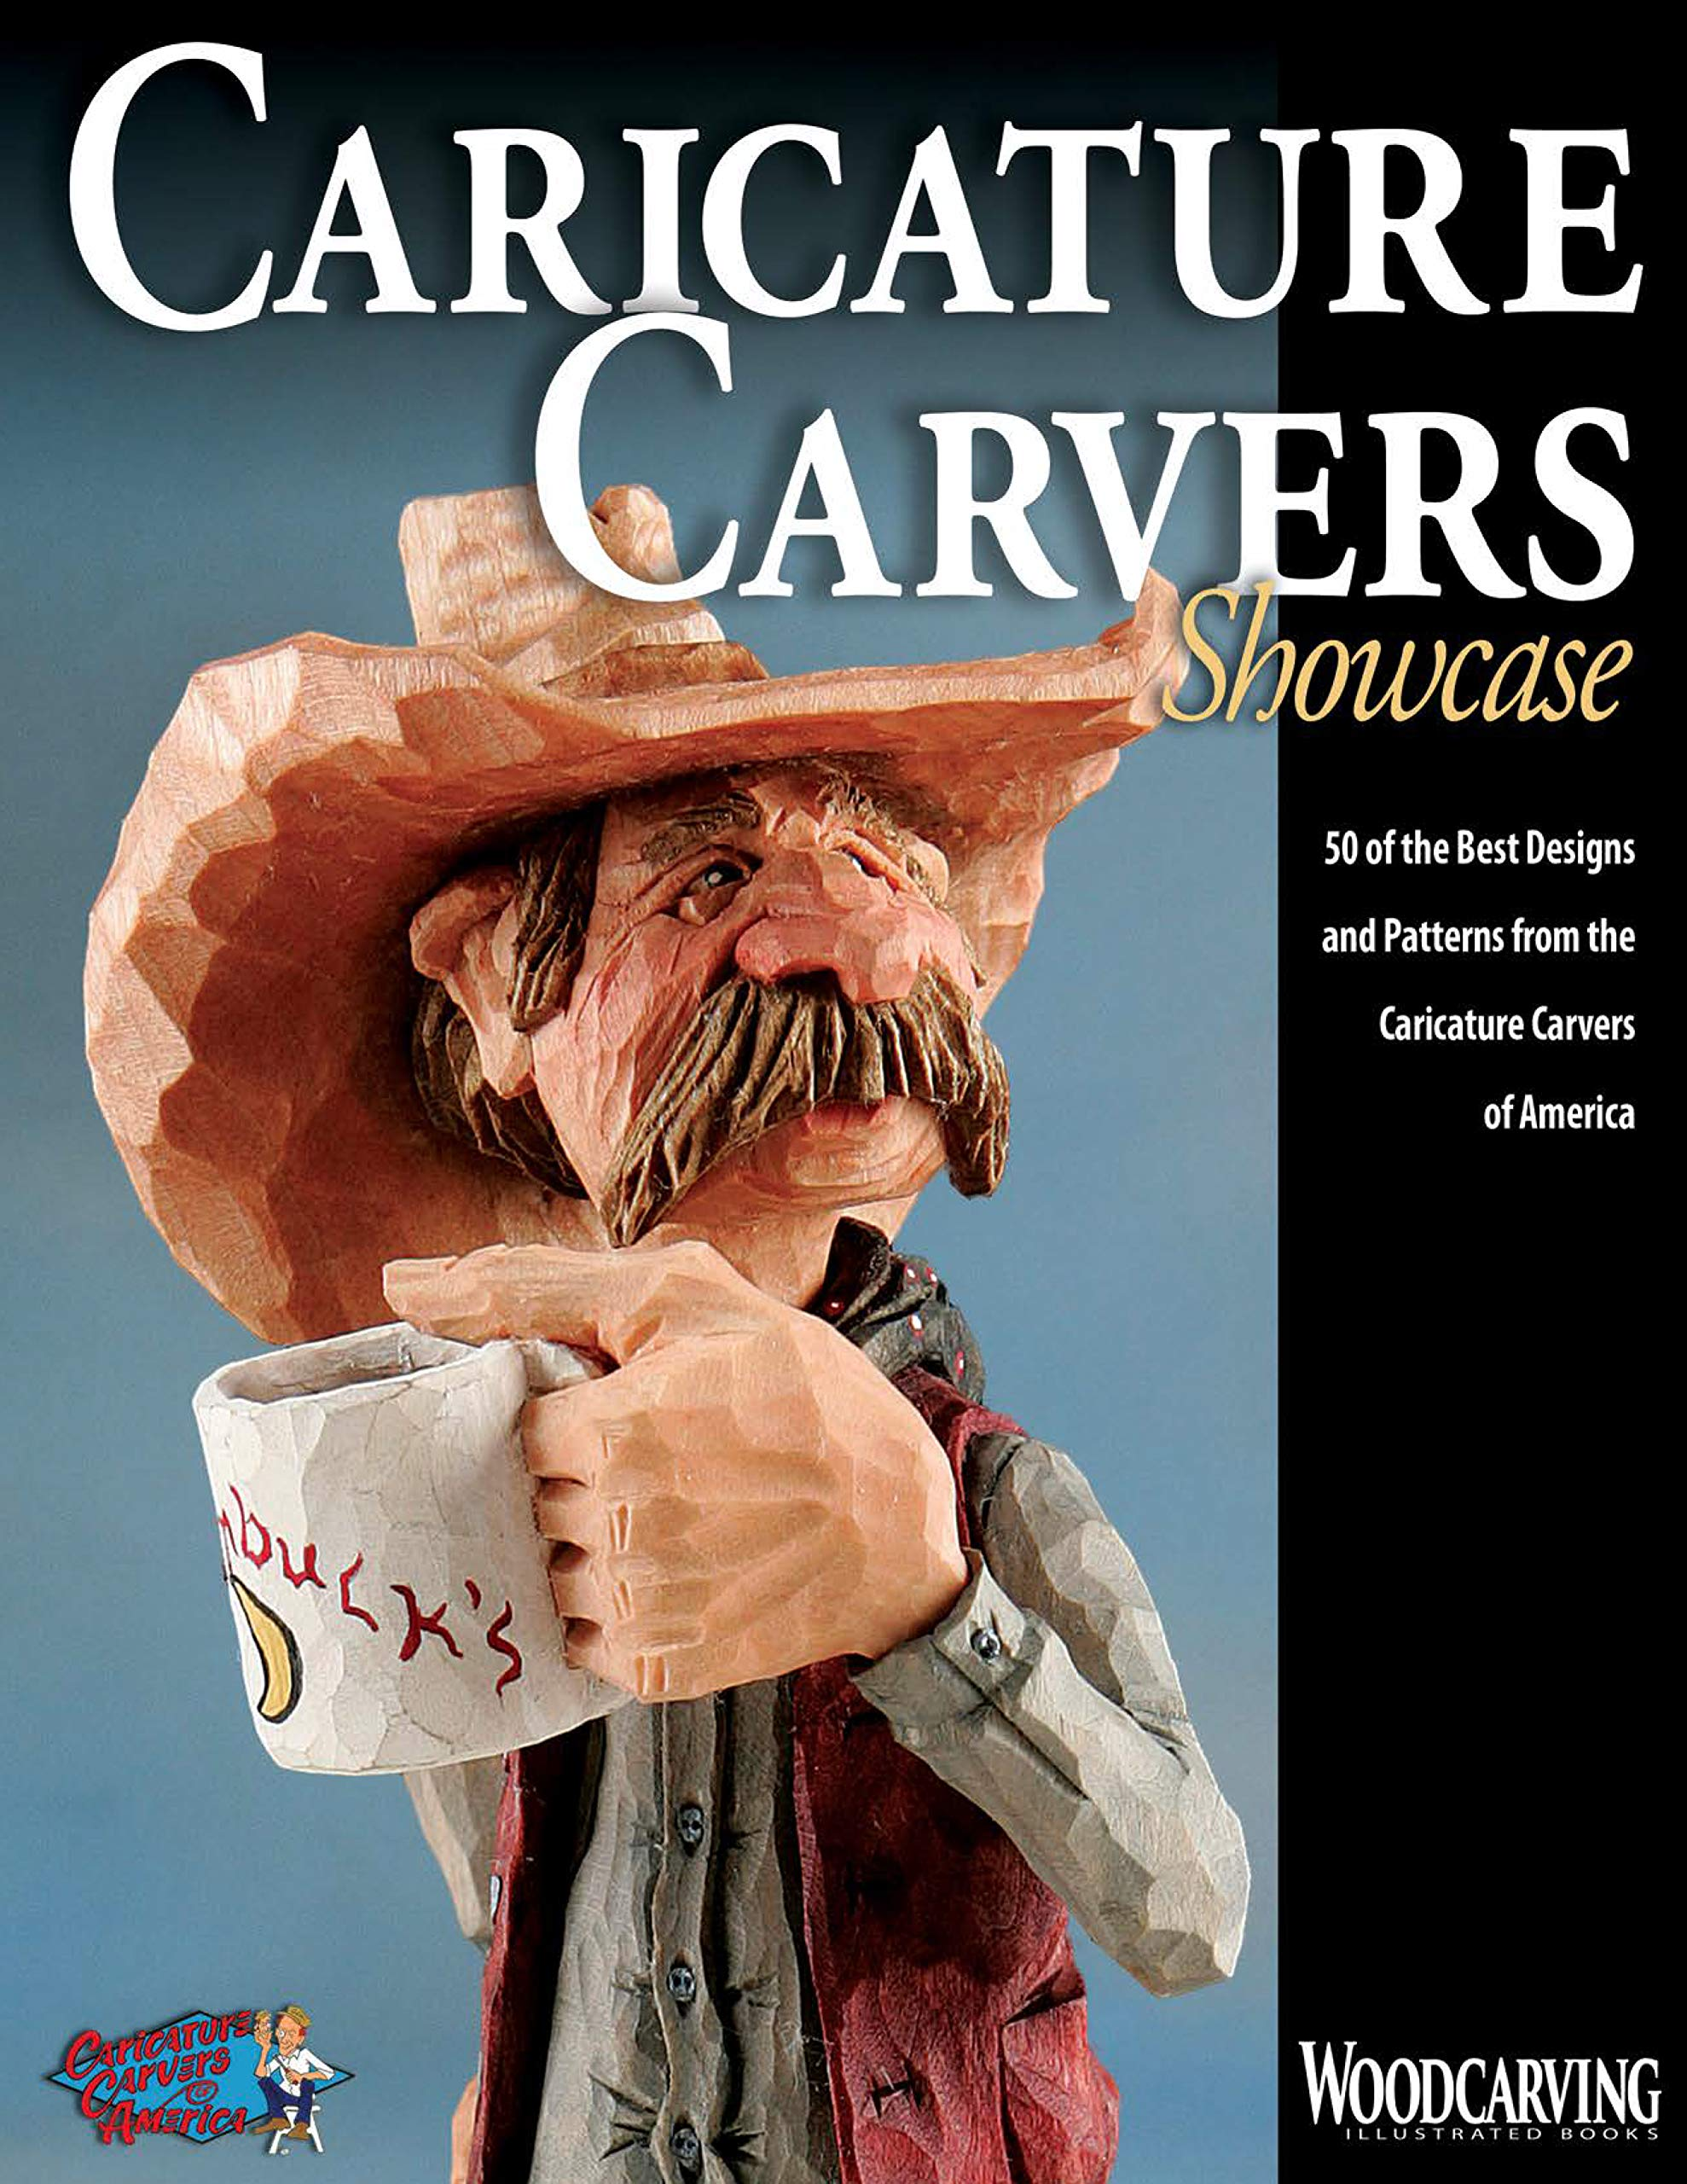 Caricature Carvers Showcase  50 Of The Best Designs And Patterns From The Caricature Carvers Of America  A Woodcarving Illustrated Book Series